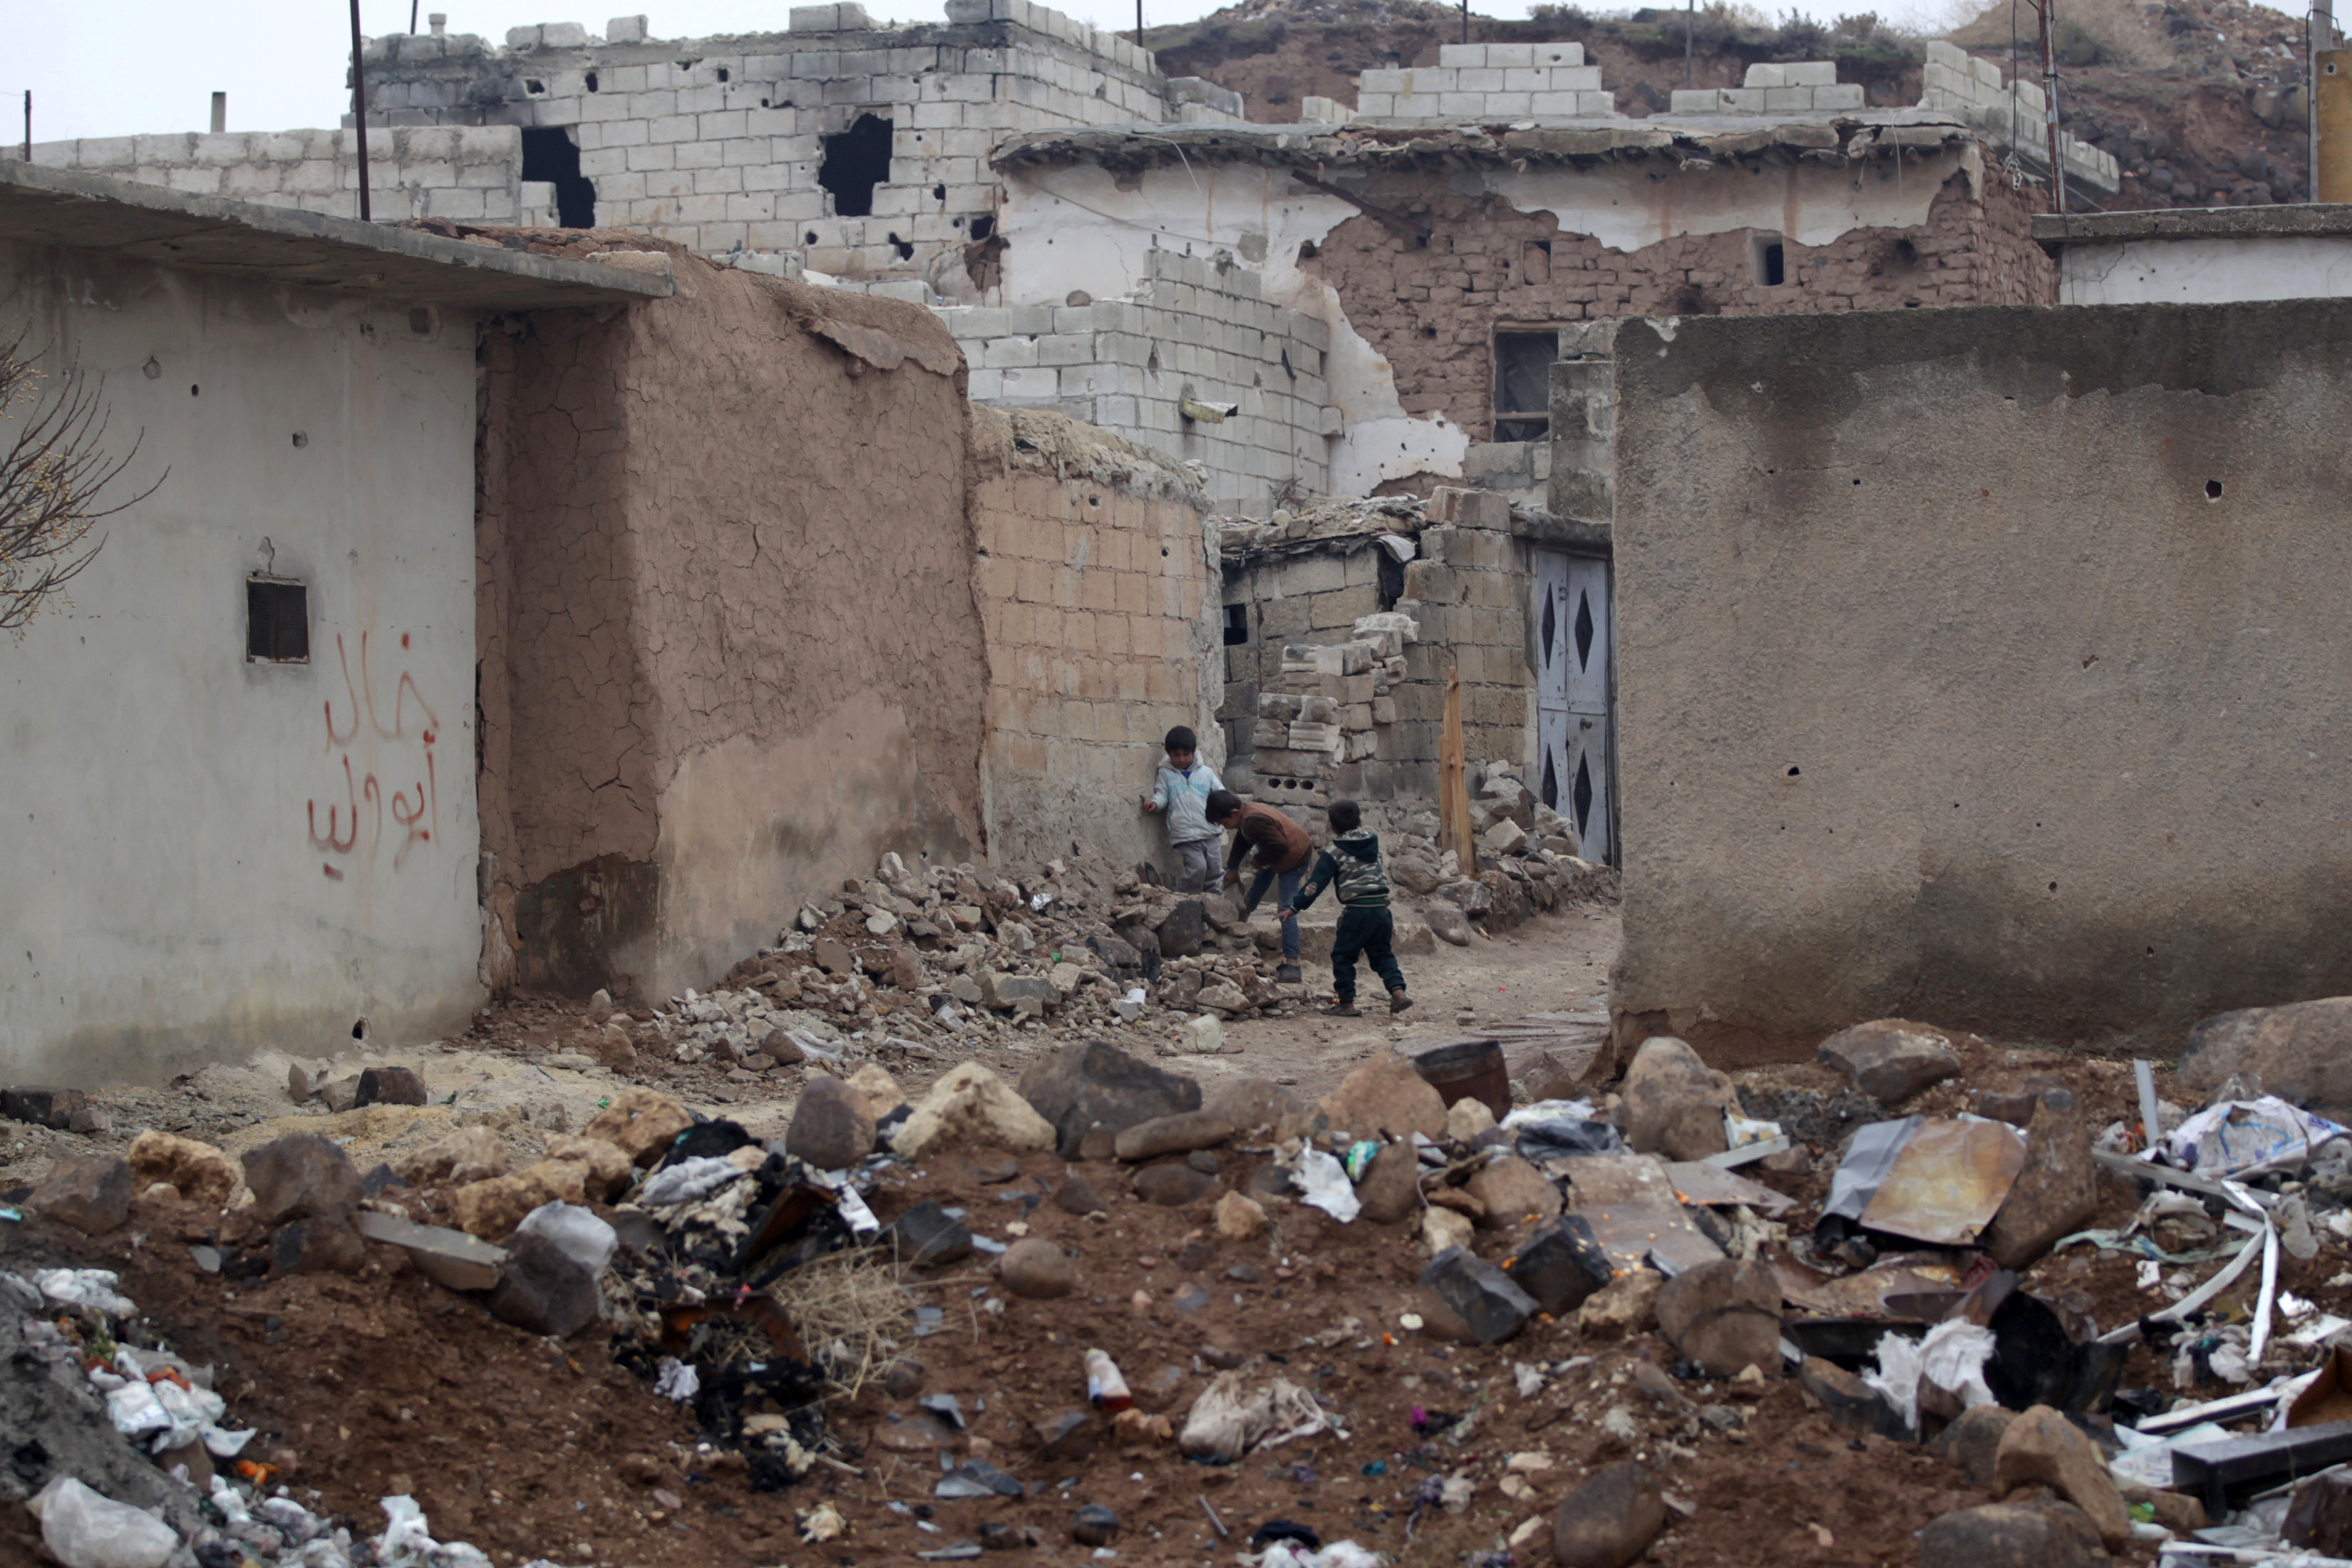 Children play near rubble of damaged buildings in al-Rai town, northern Aleppo countryside, Syria